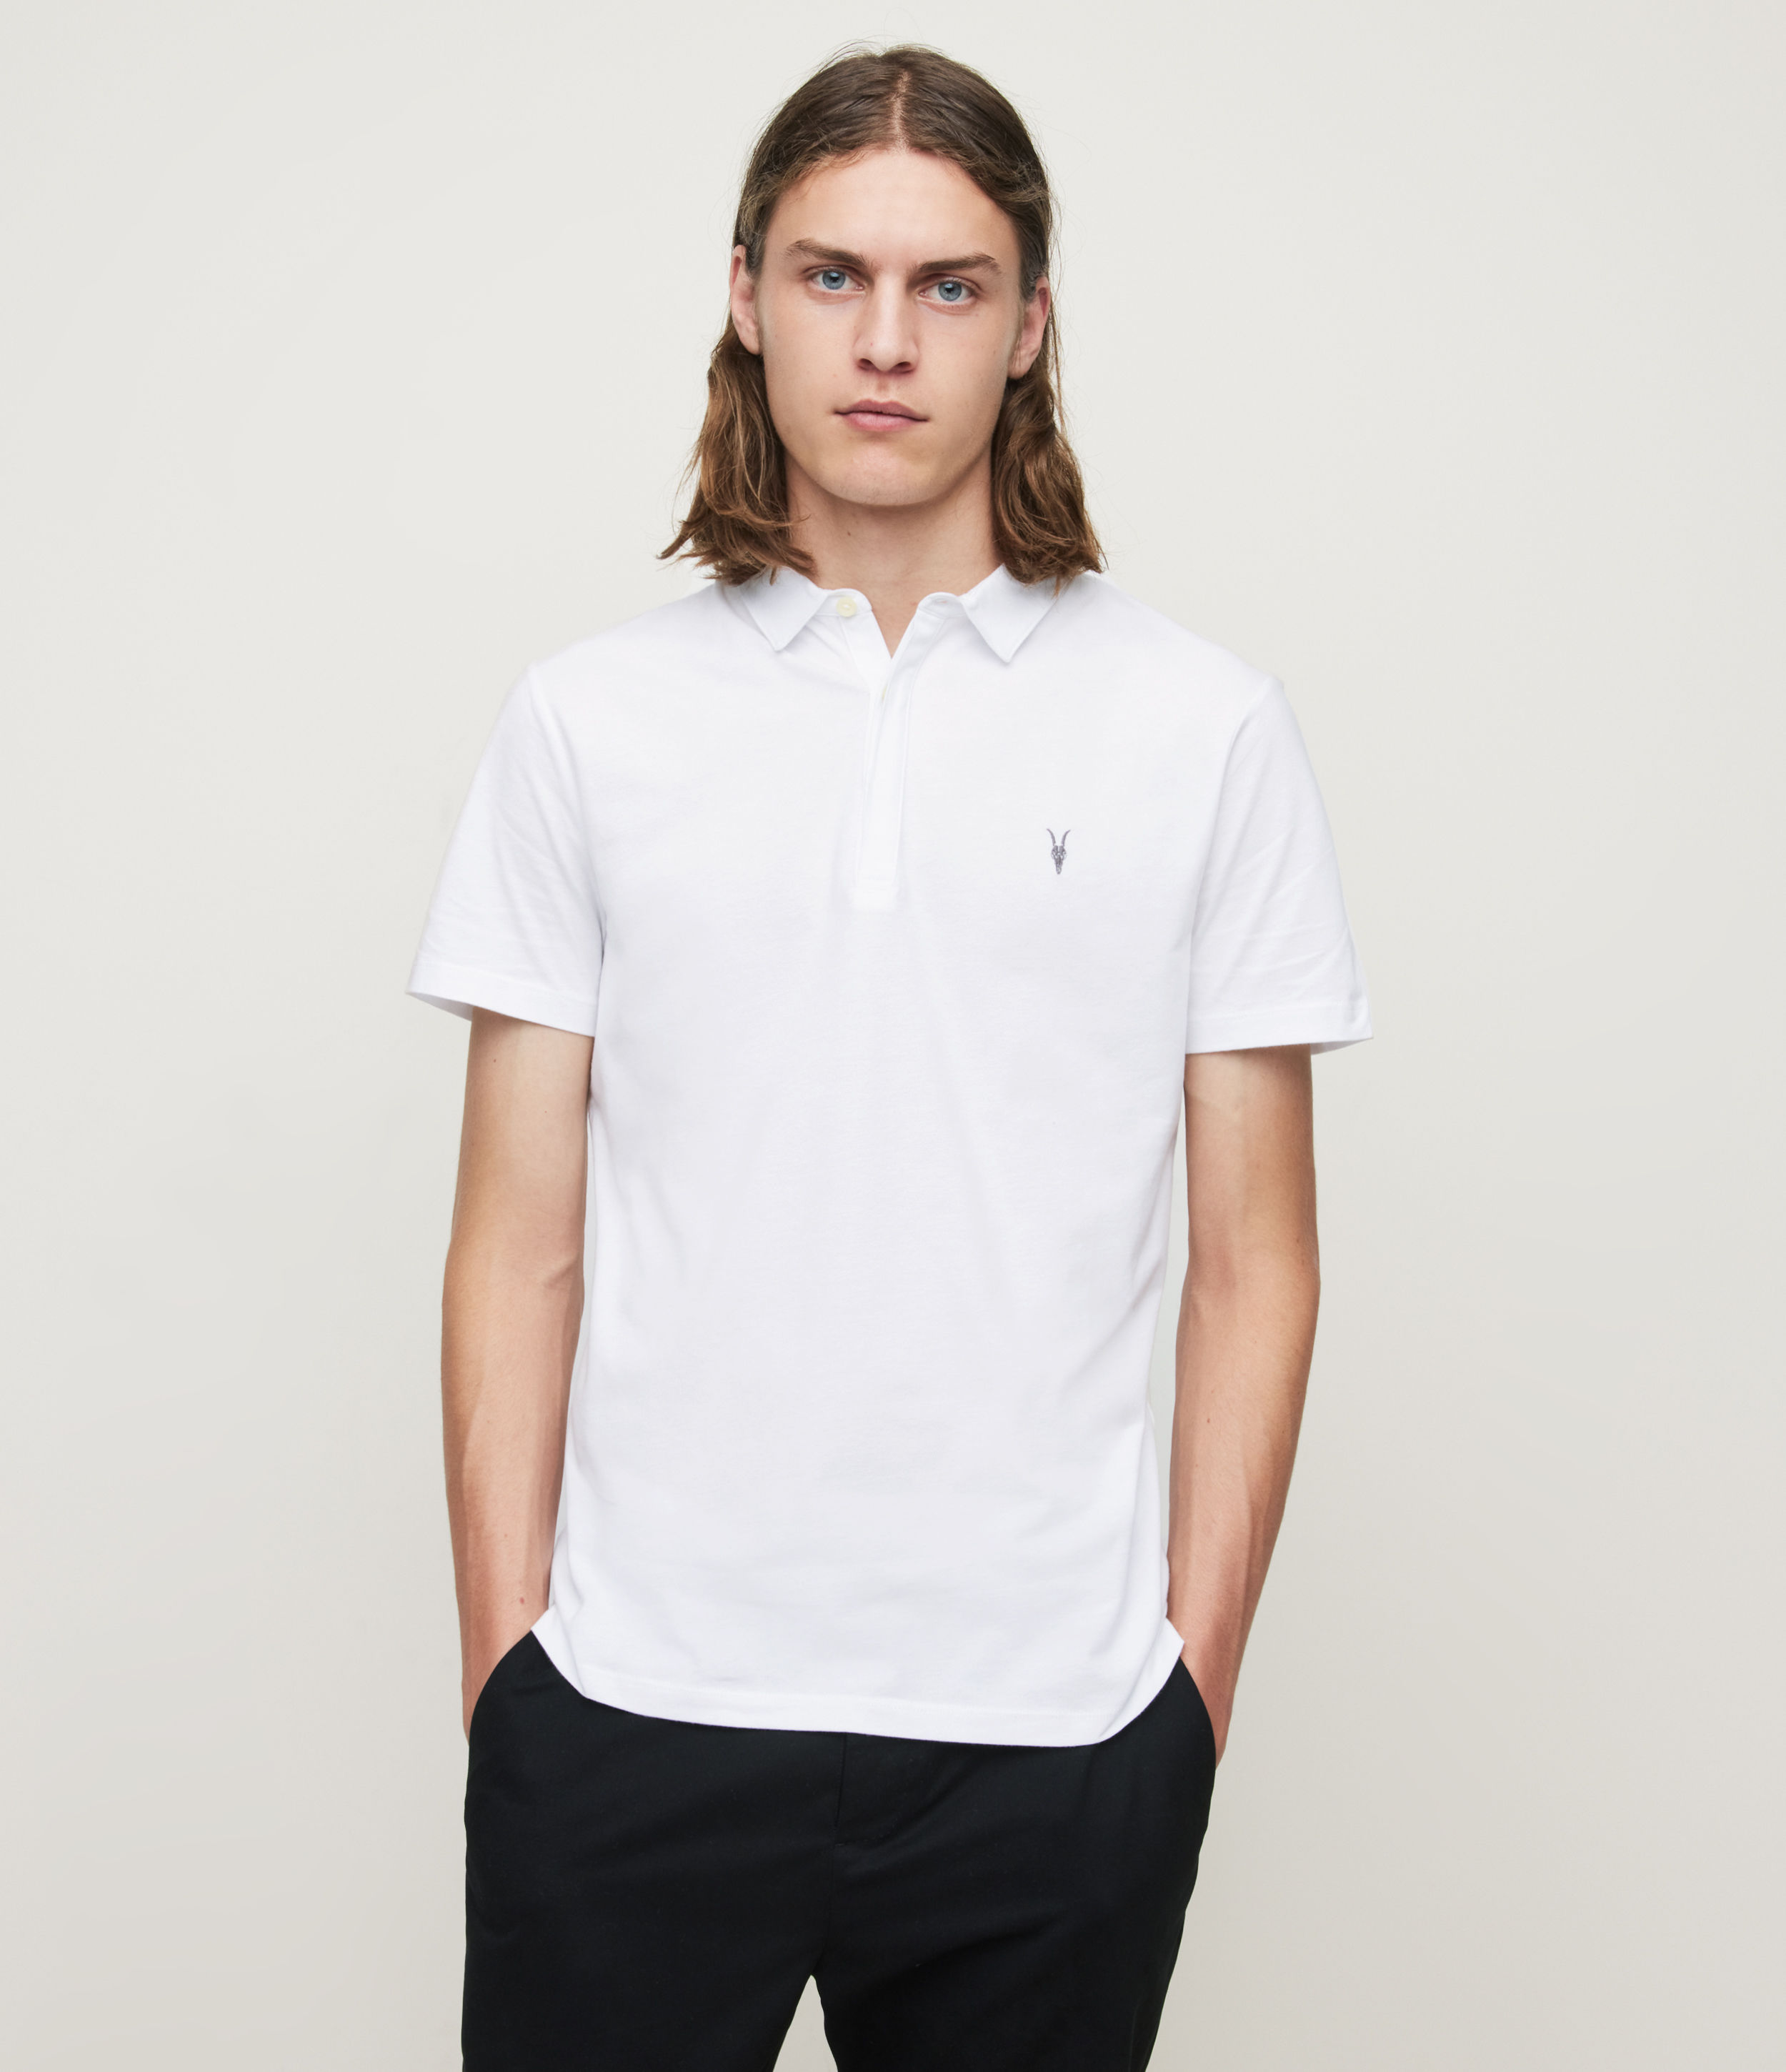 AllSaints Men's Cotton Regular Fit Brace Short Sleeve Polo Shirt, White, Size: XXL